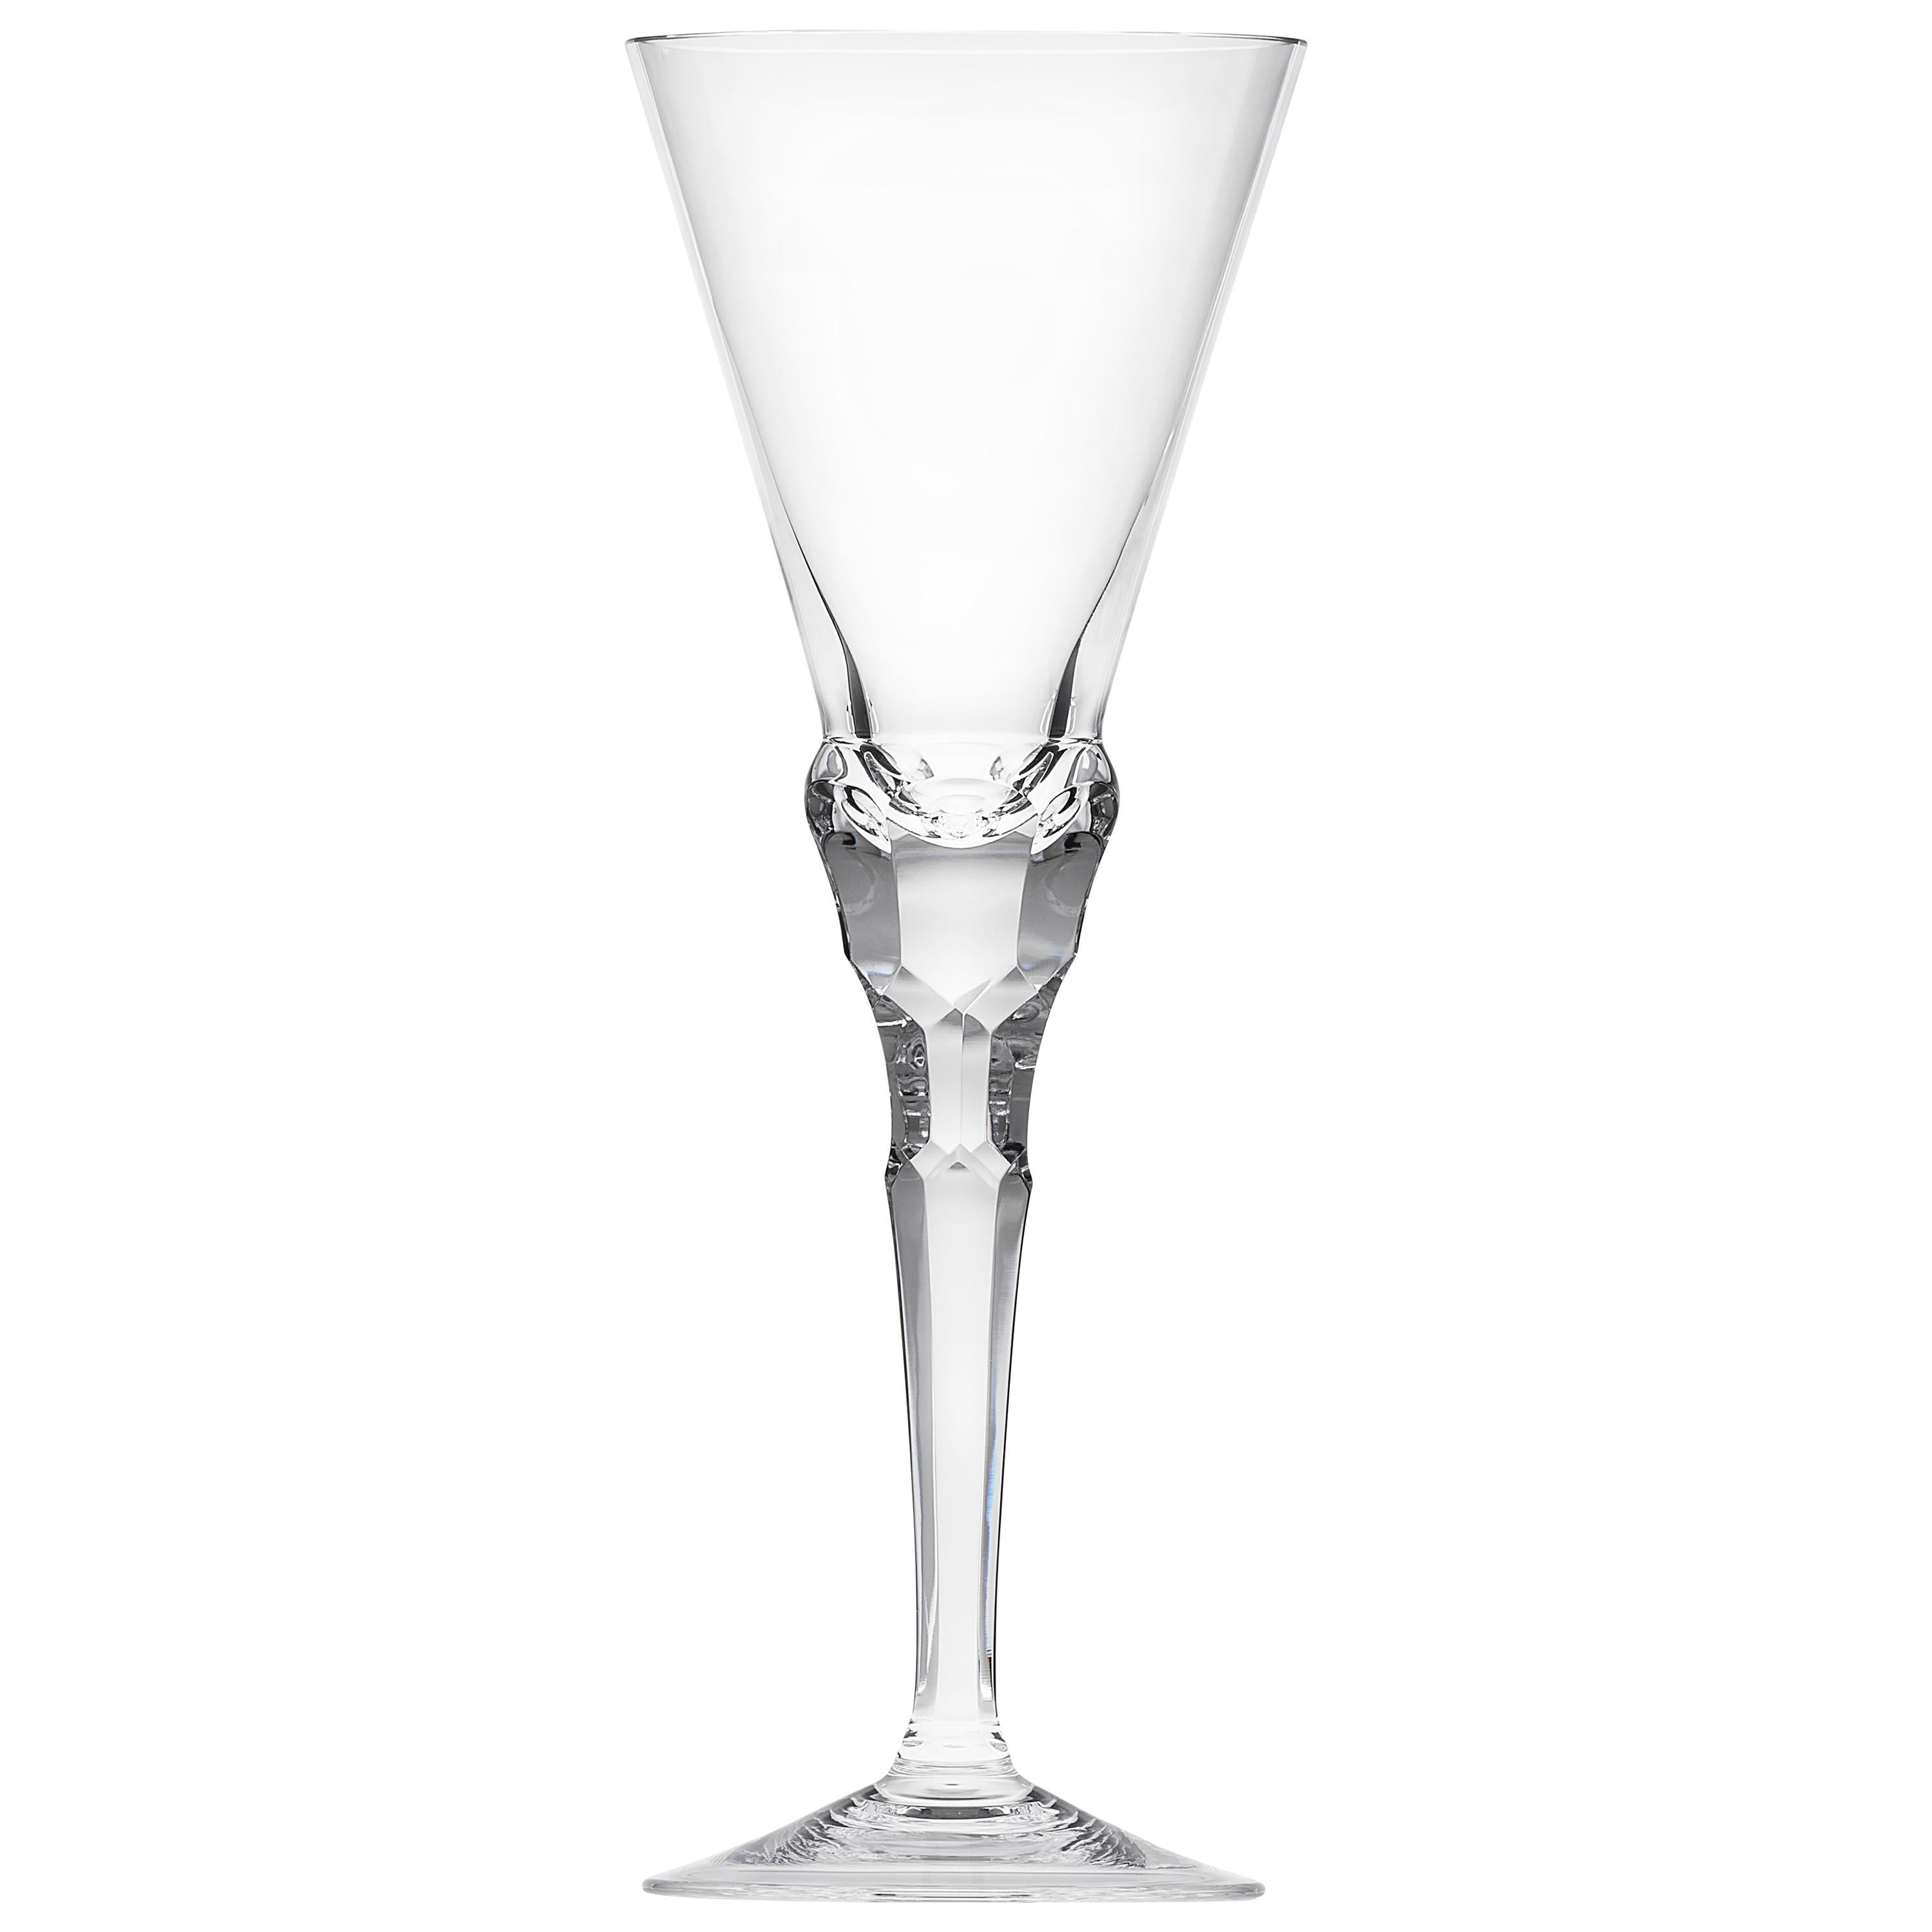 Sonnet Red Wine Goblet Clear Lead-Free Crystal Glass Clear, 9.12 Oz